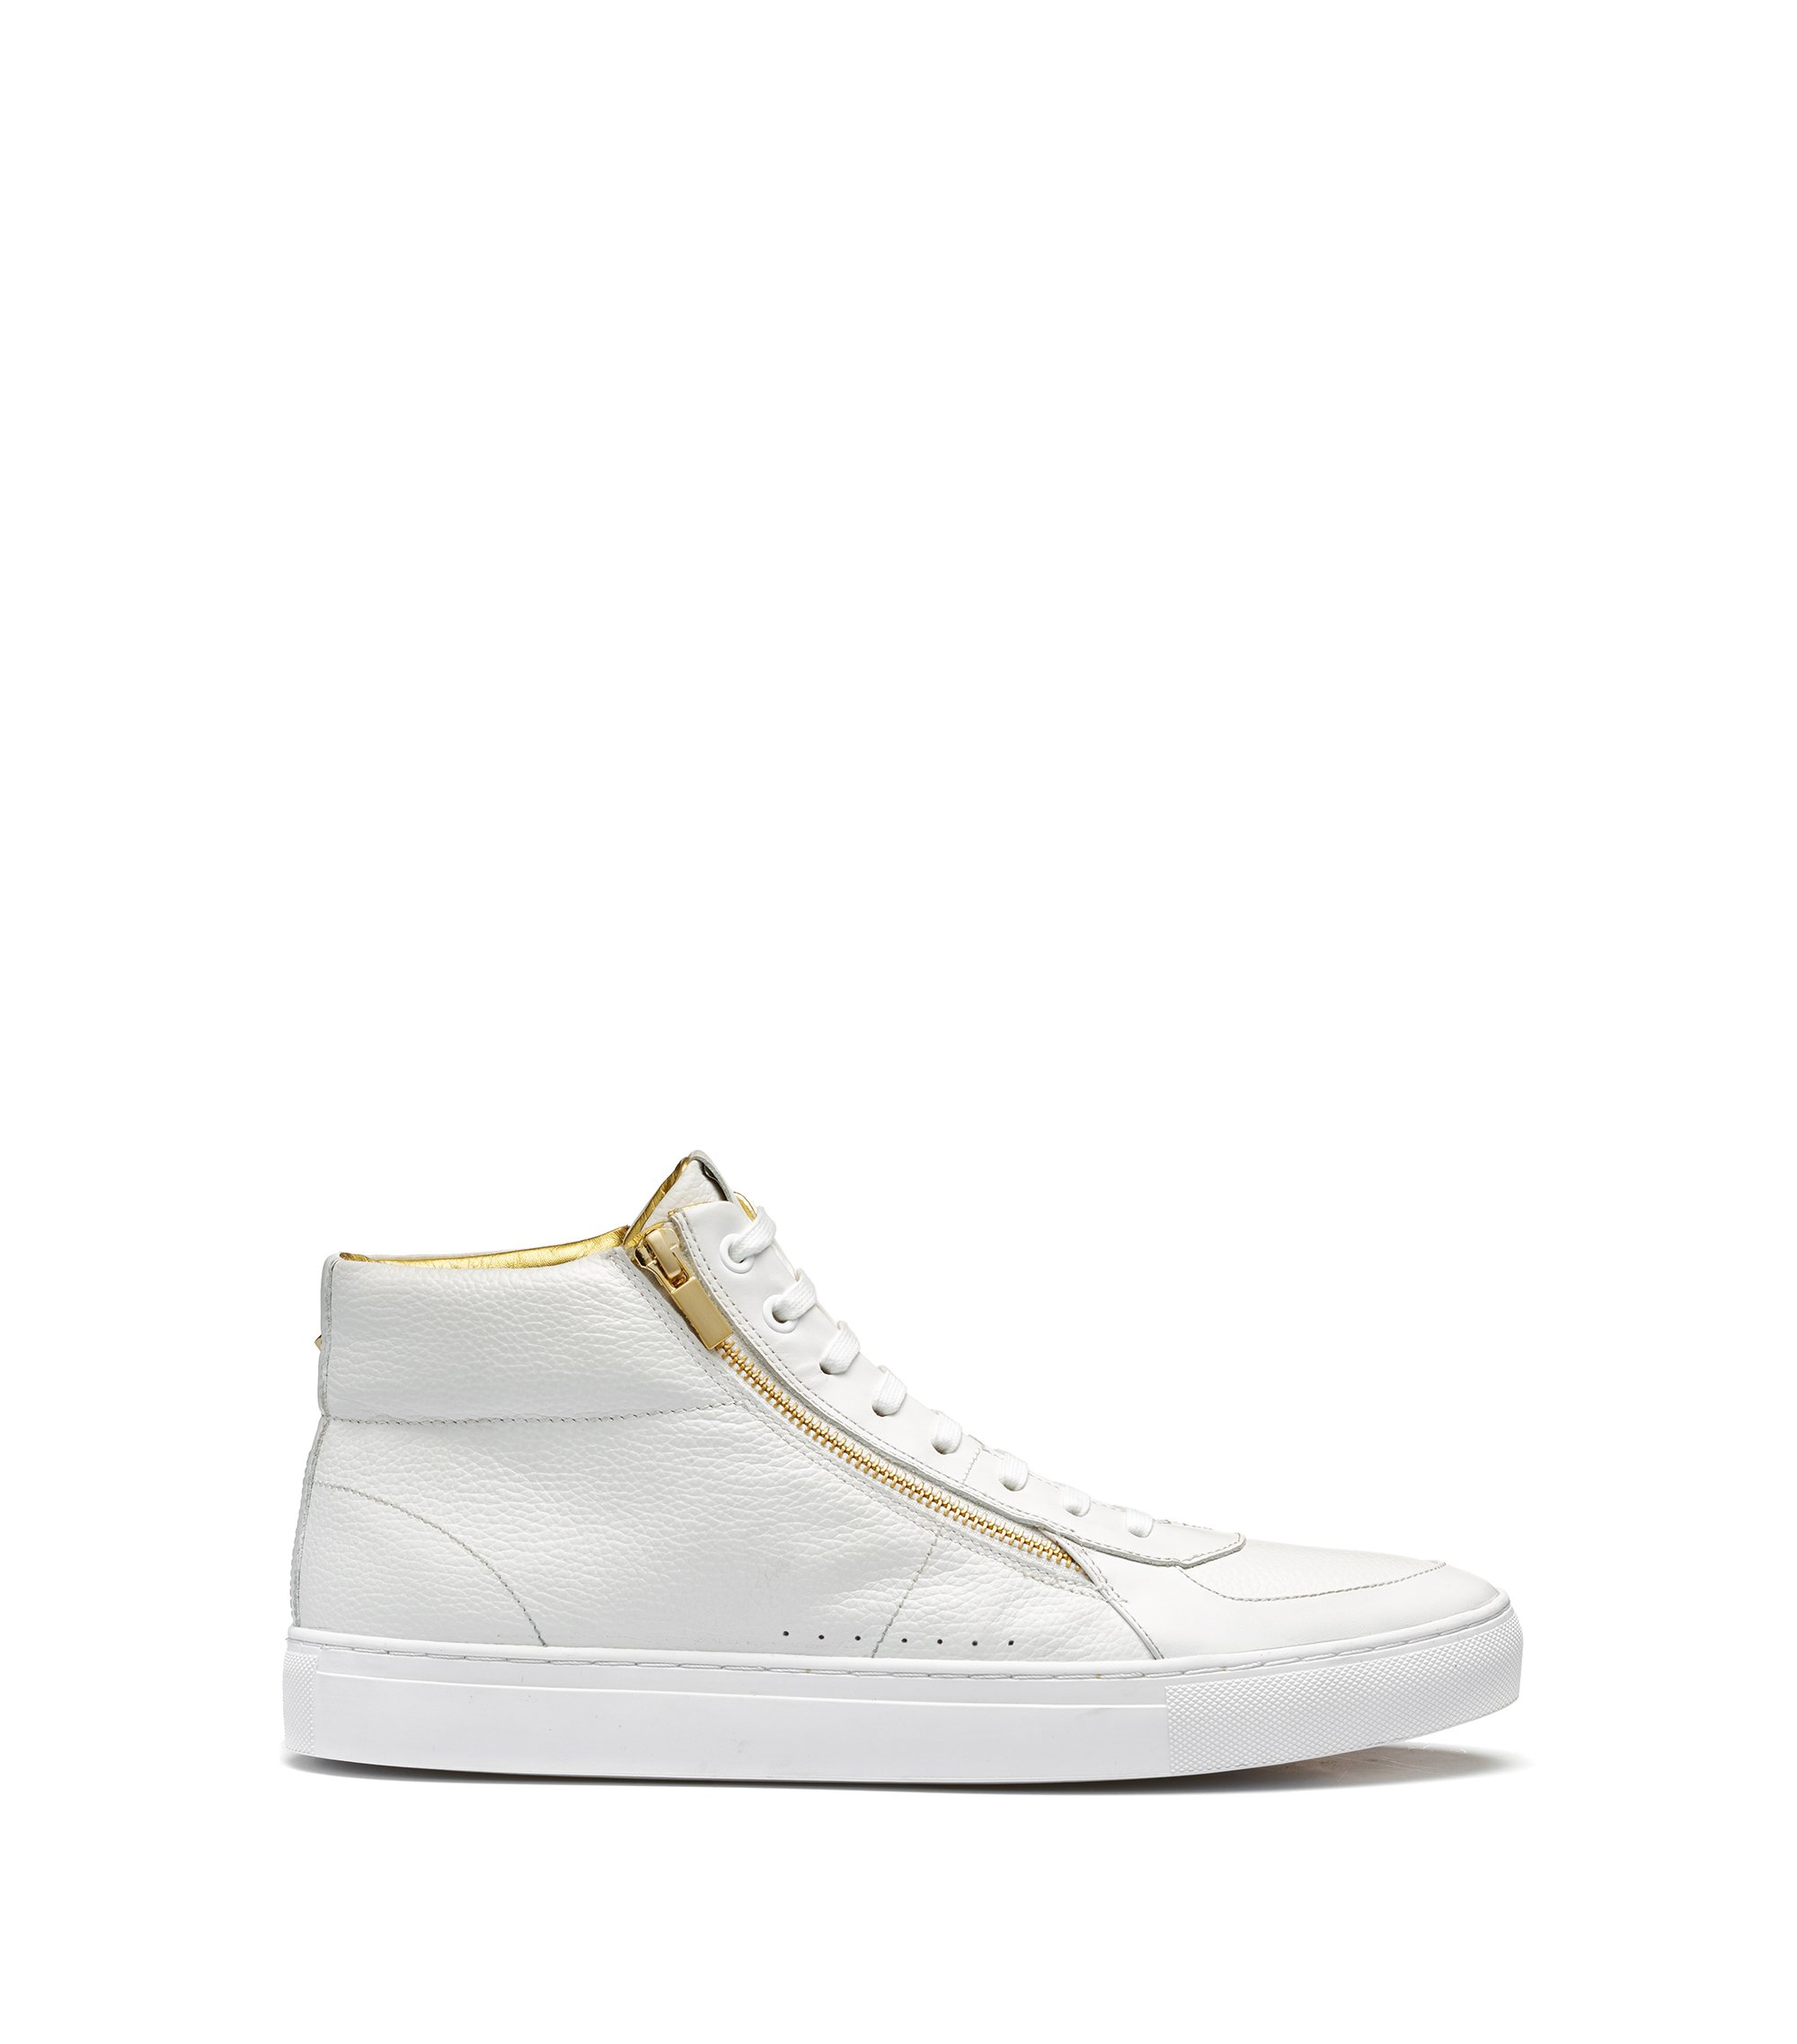 Sneakers high-top in pelle nappa e pelle martellata con doppia zip, Bianco